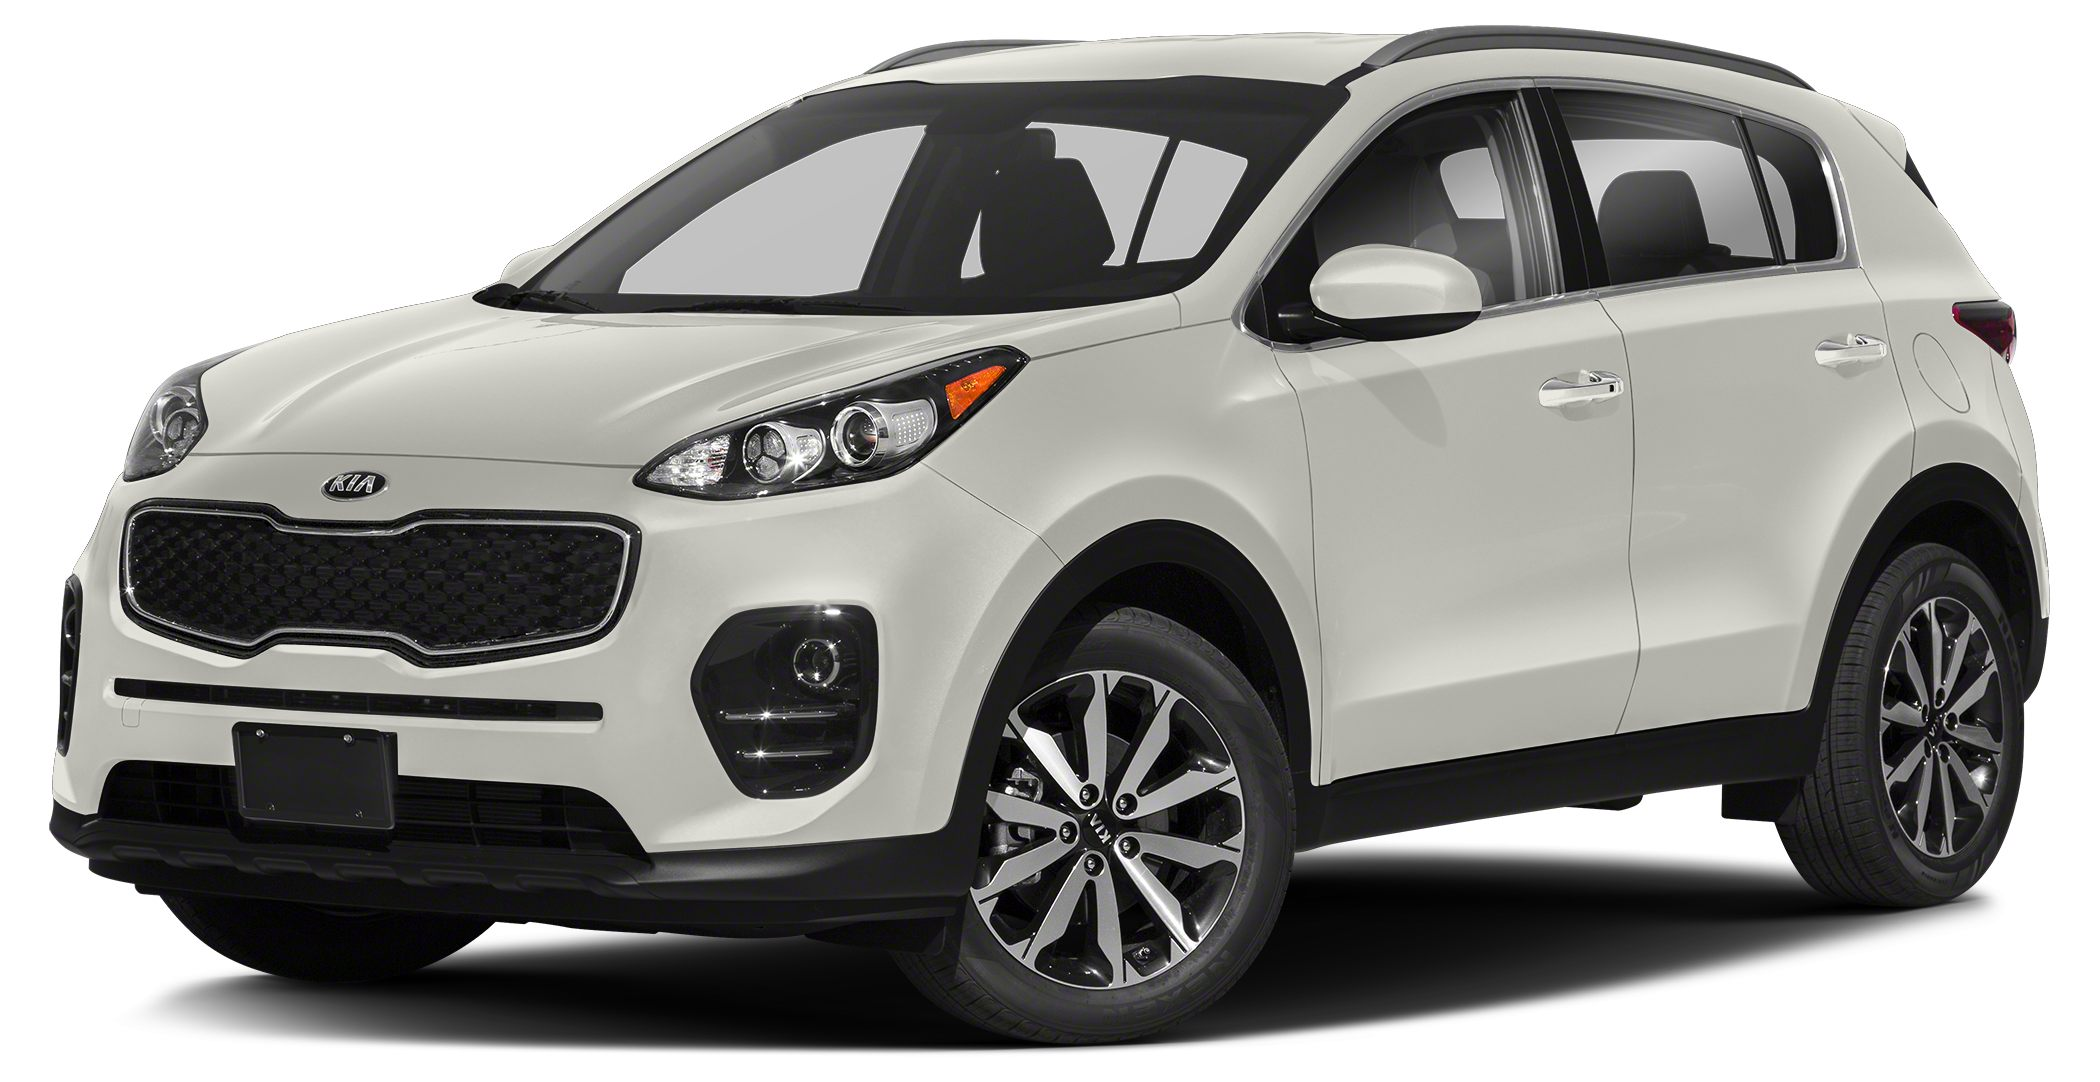 2018 Kia Sportage EX Designed for the bold the 2018 Kia Sportage captivates the eye and inspires